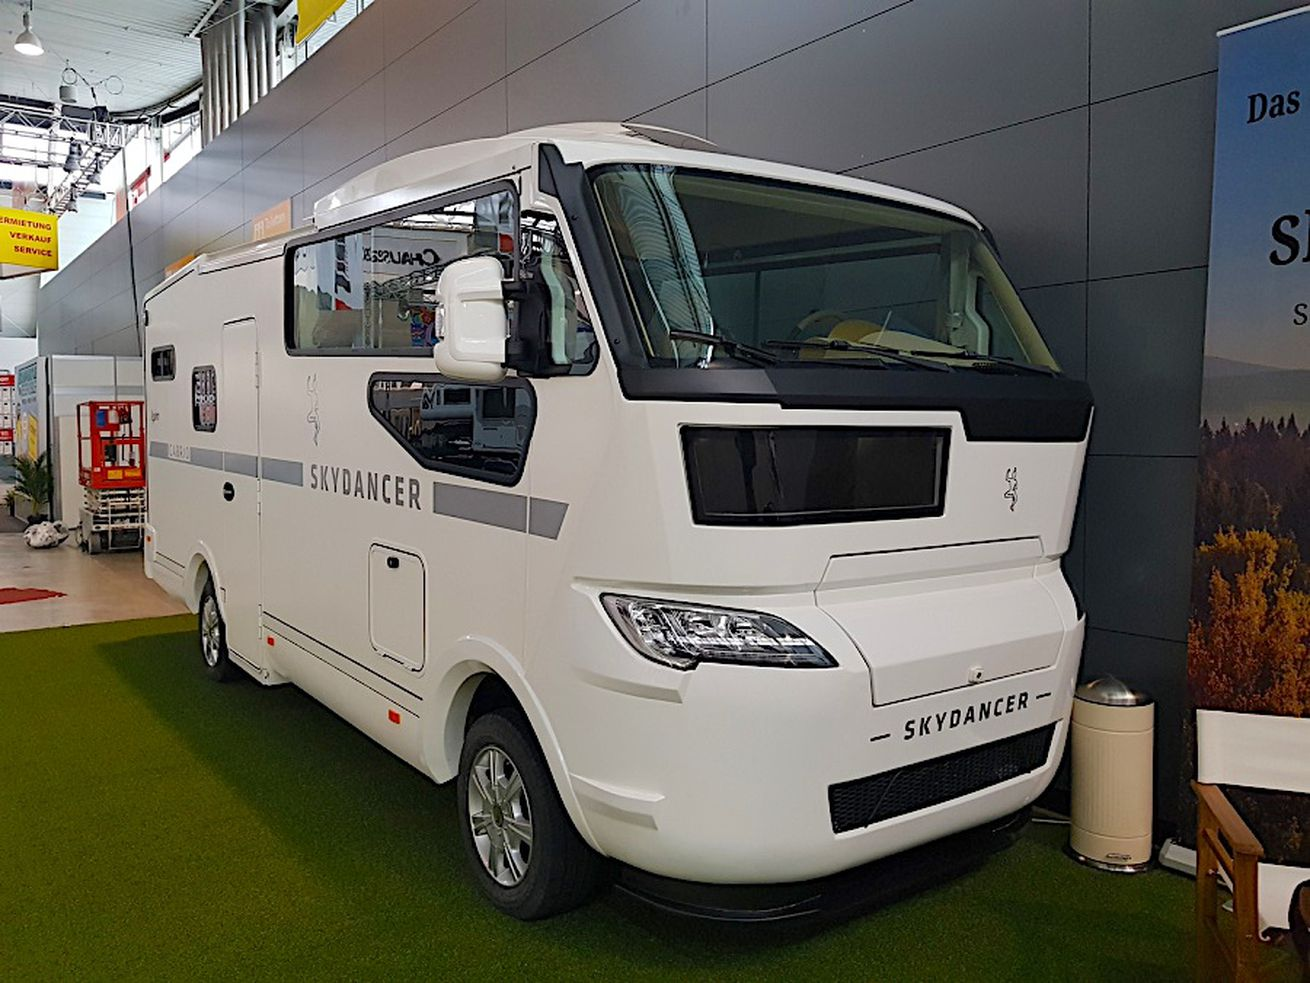 You can drive with the top down in this innovative camper